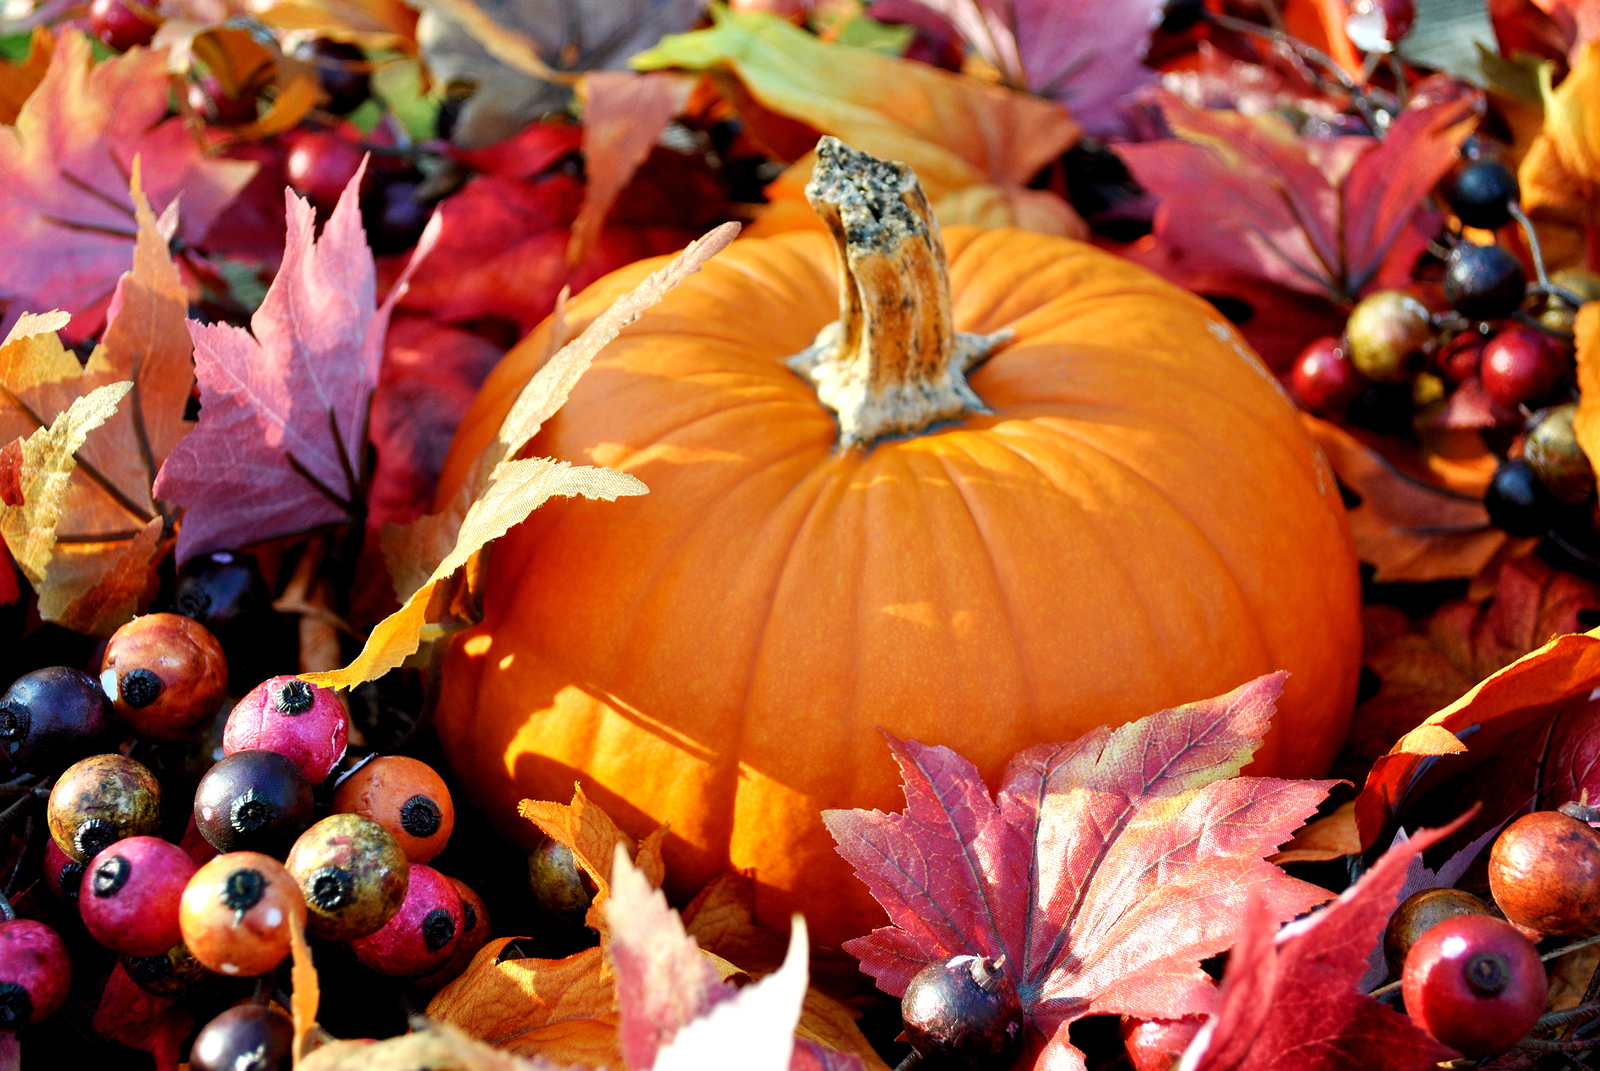 bigstock-Thanksgiving-Pumpkin-49944248.jpg